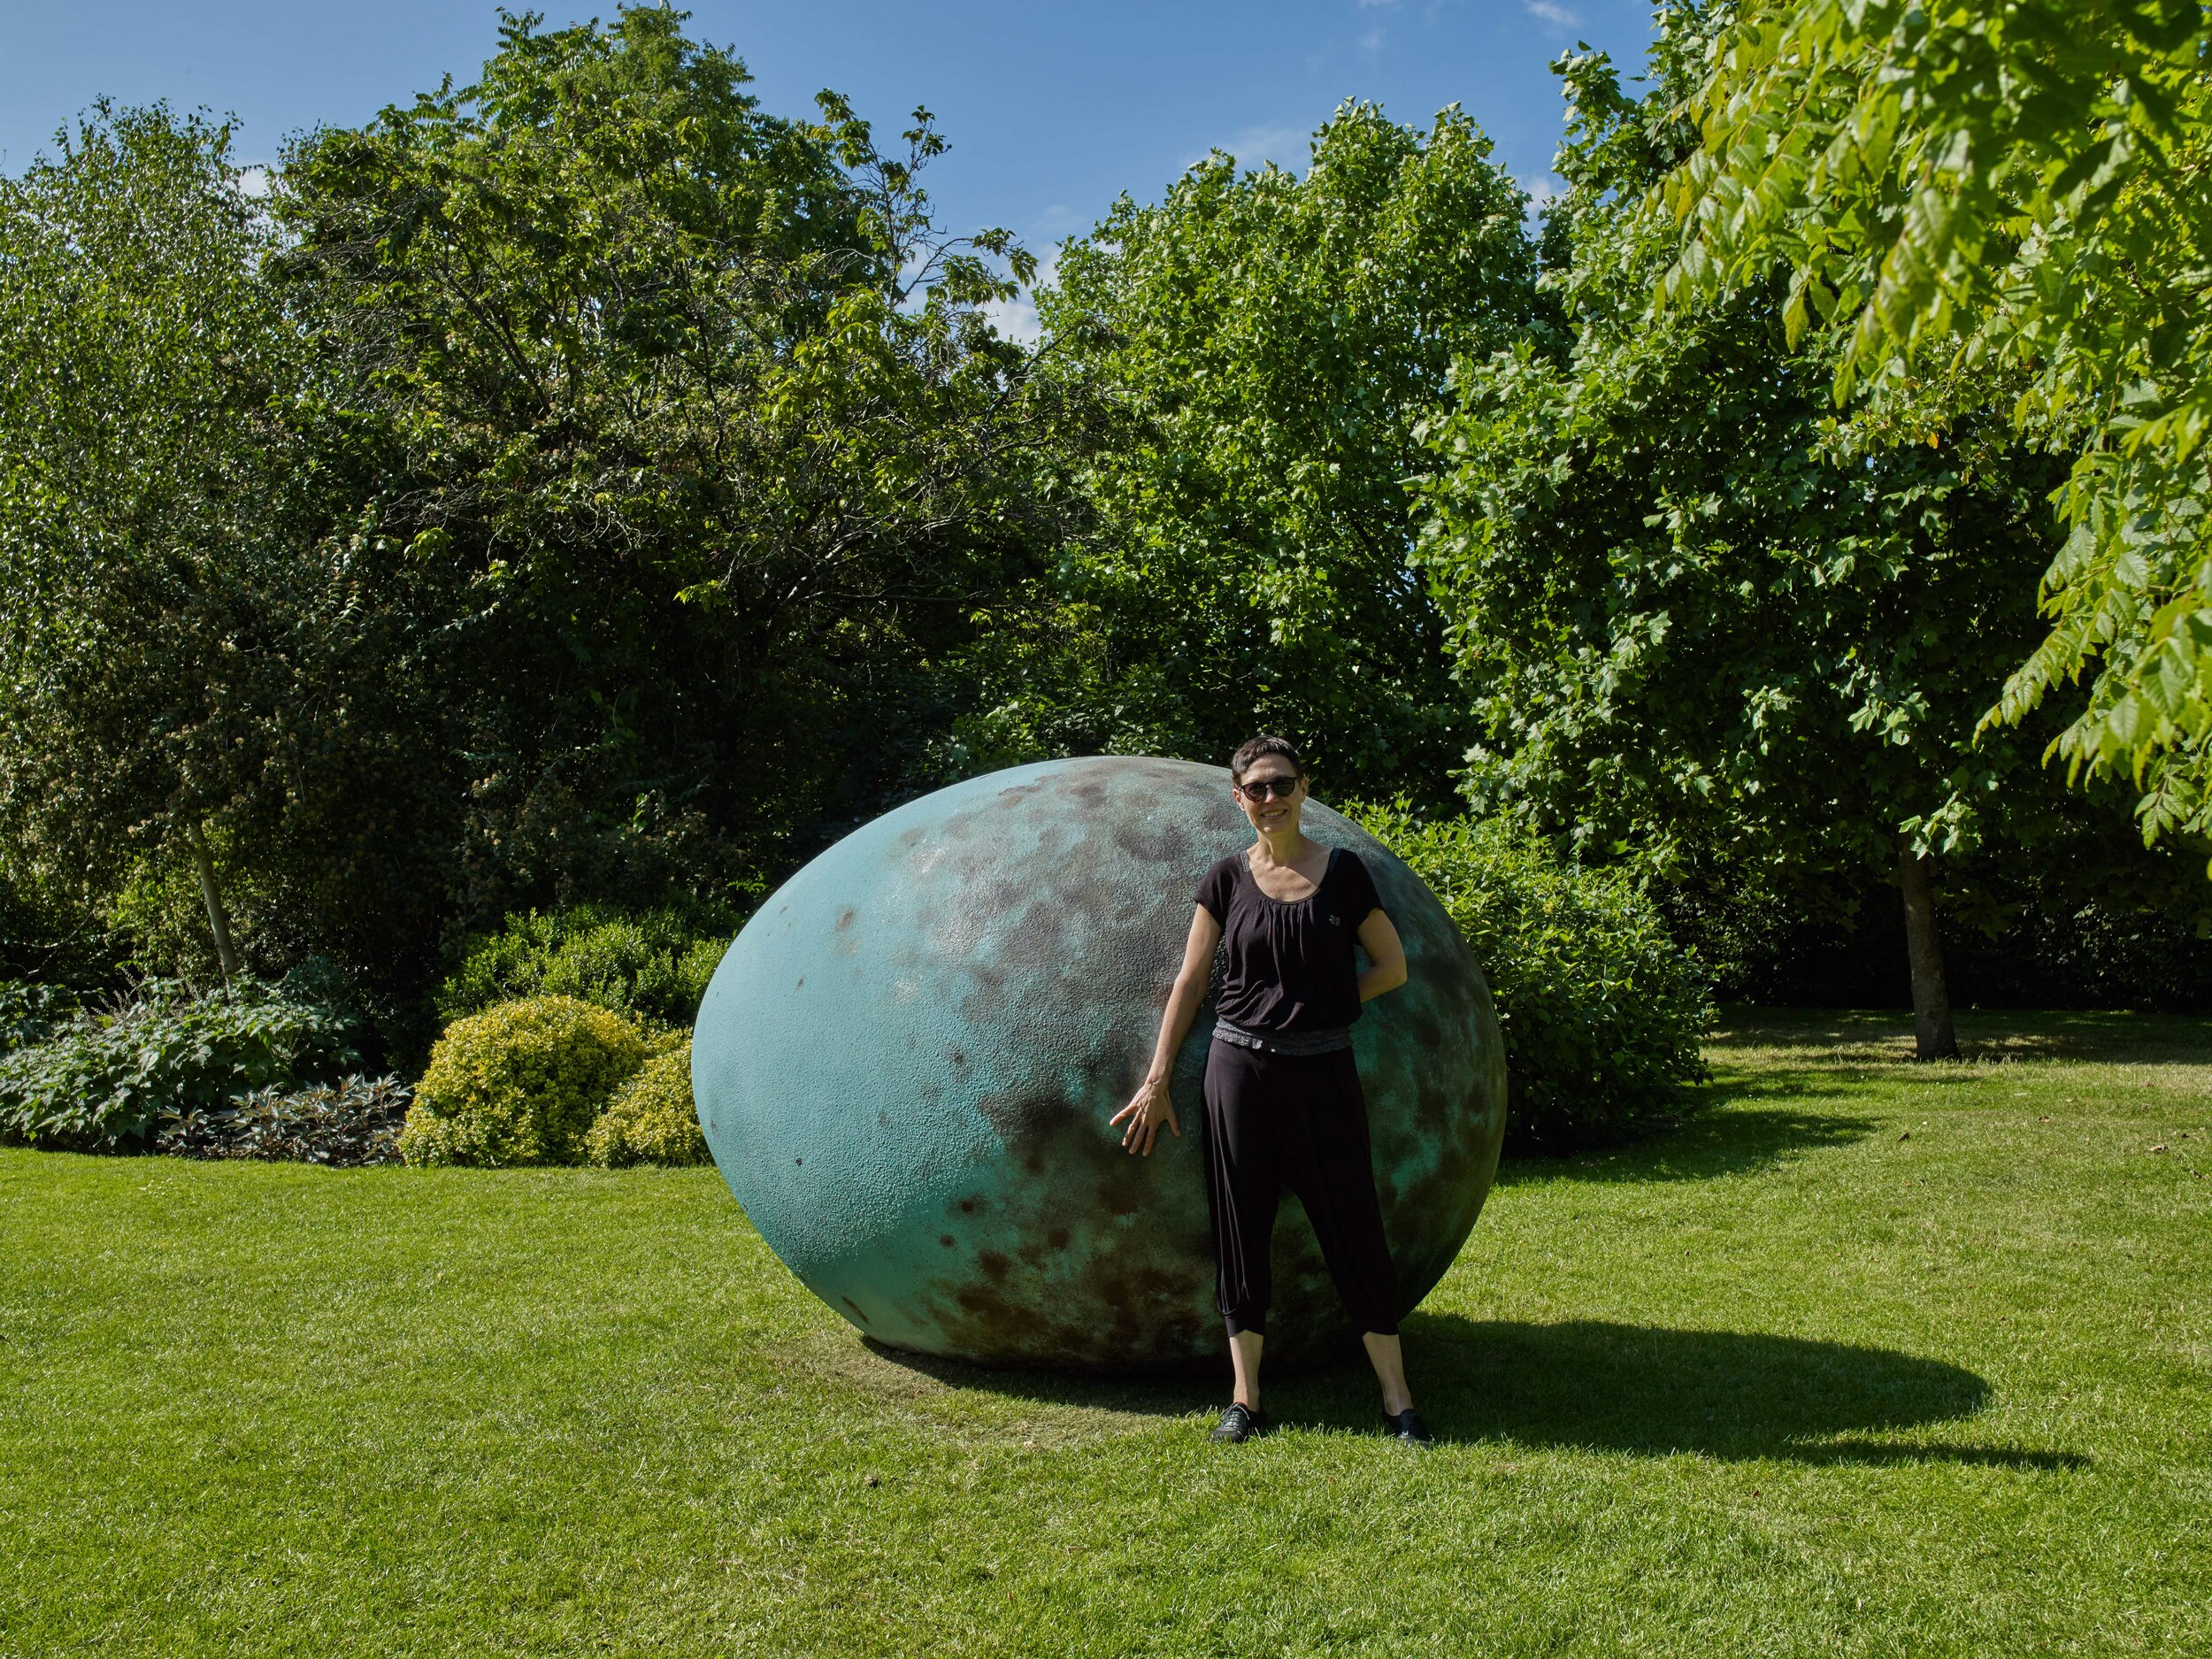 Joanna Rajkowska in front of The Hatchling at Frieze Sculpture